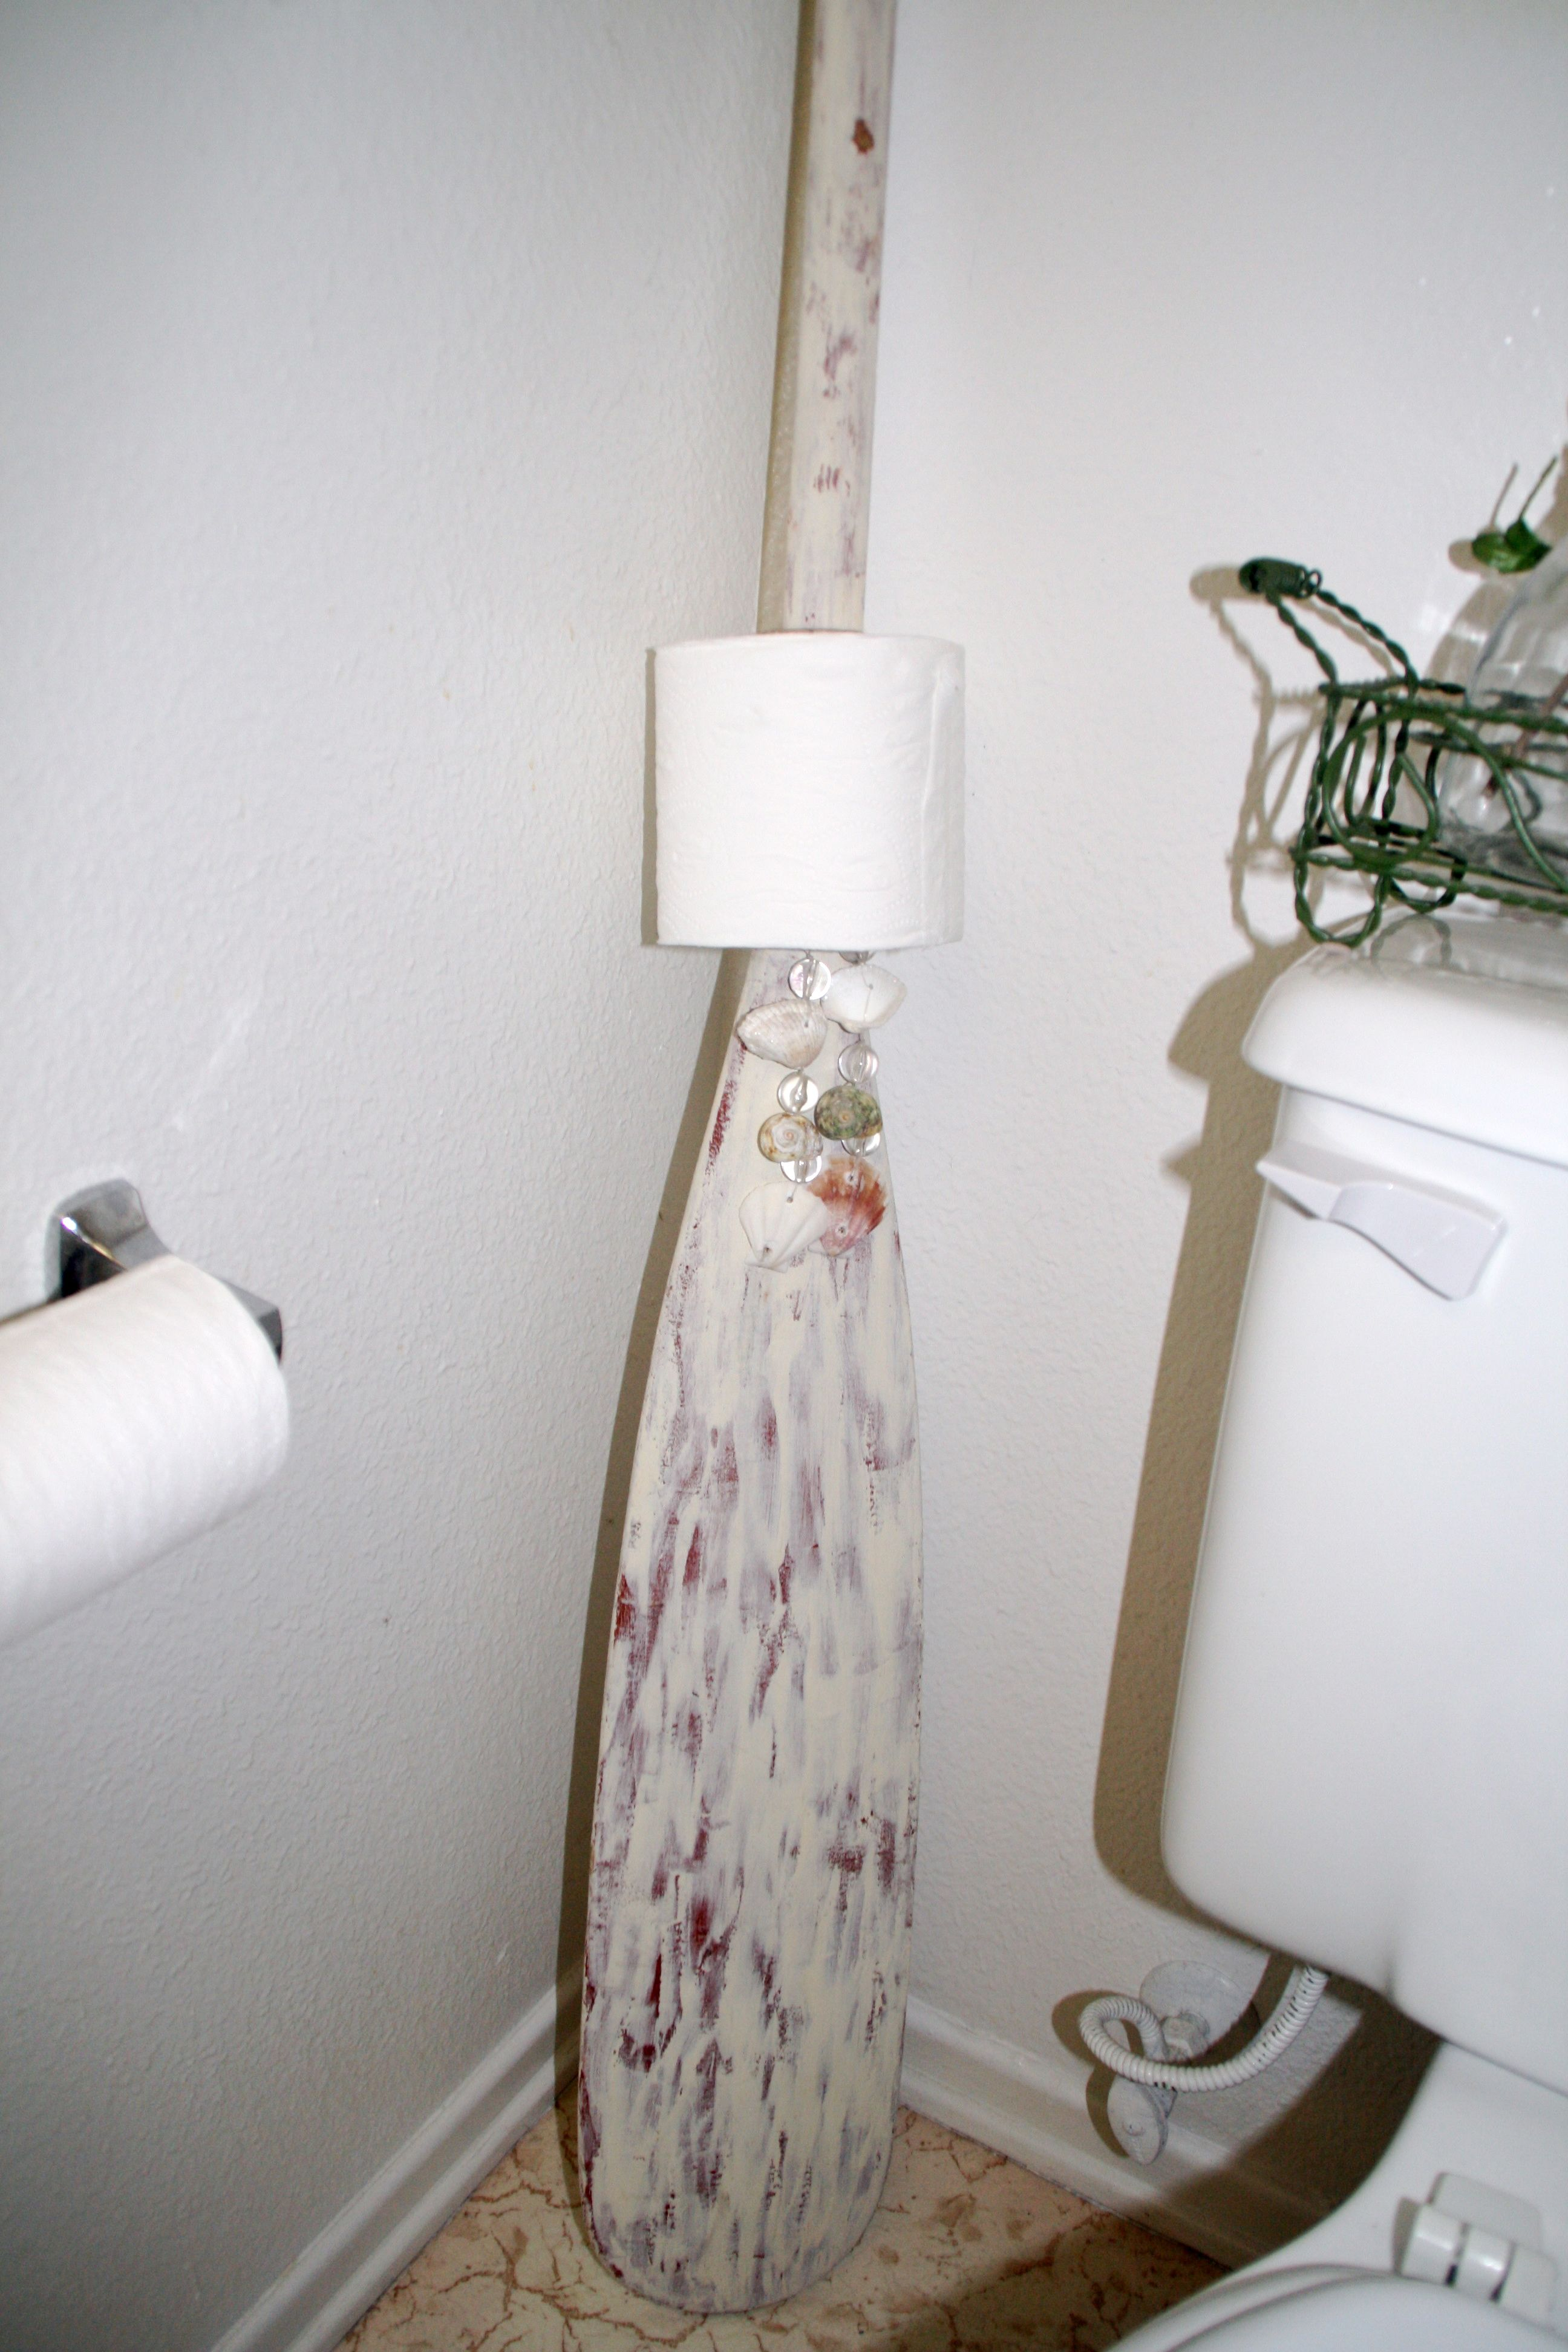 Old Oar Used As Toilet Paper Holder With Images Diy Toilet